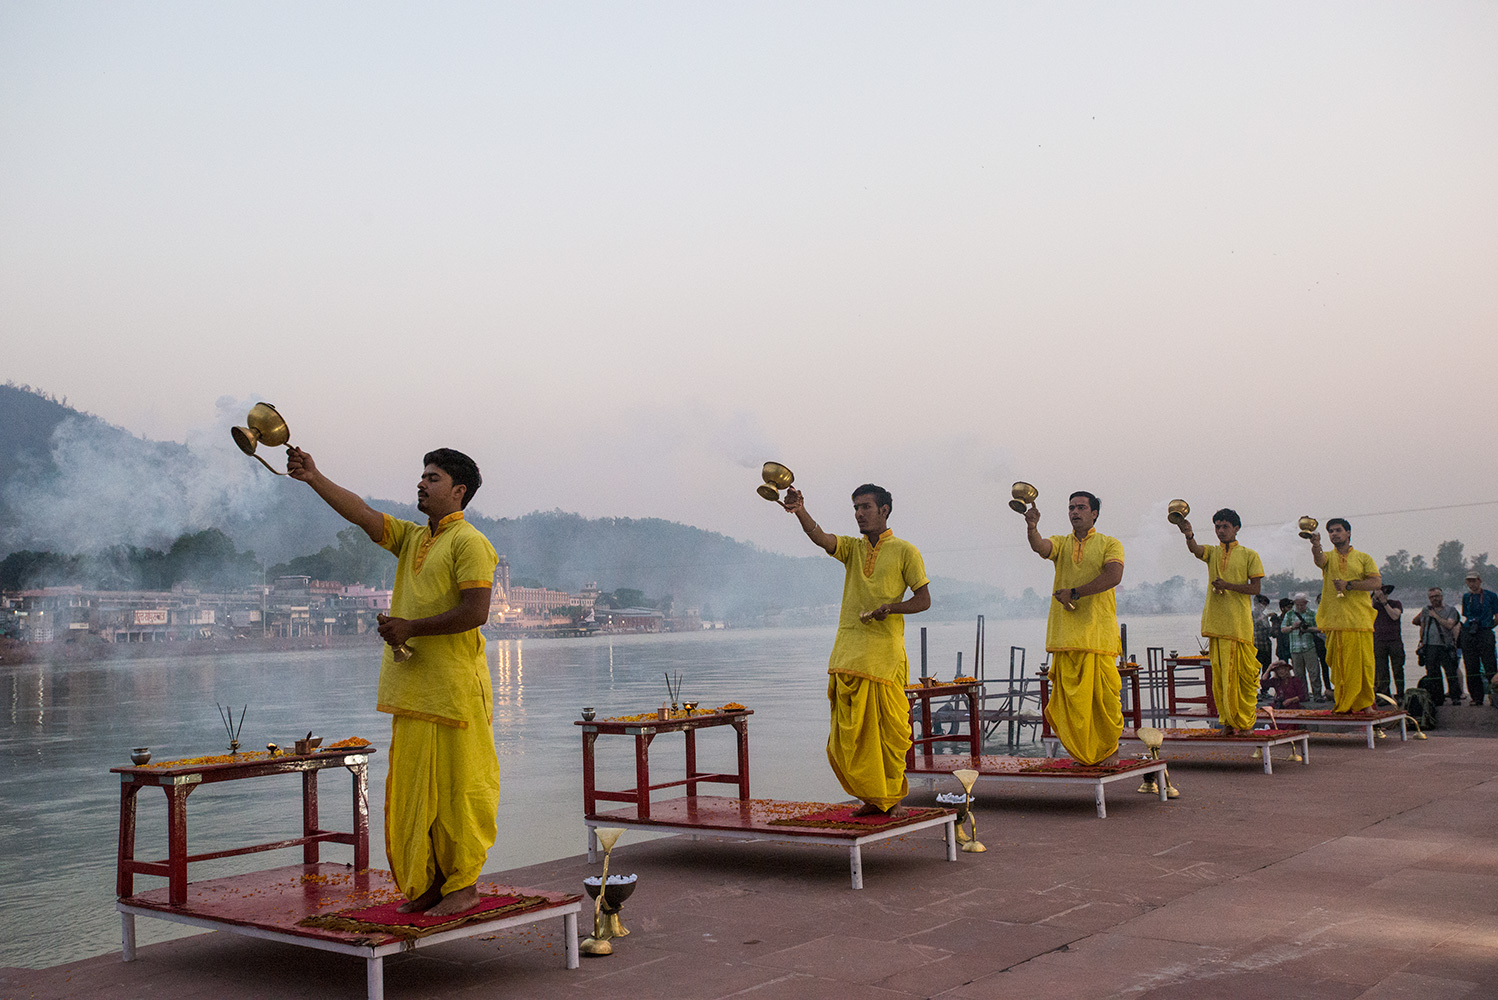 On the opposite bank of the Ganga from the Parmanth Niketan Ashram, this more relaxed and informal aarti ceremony takes place